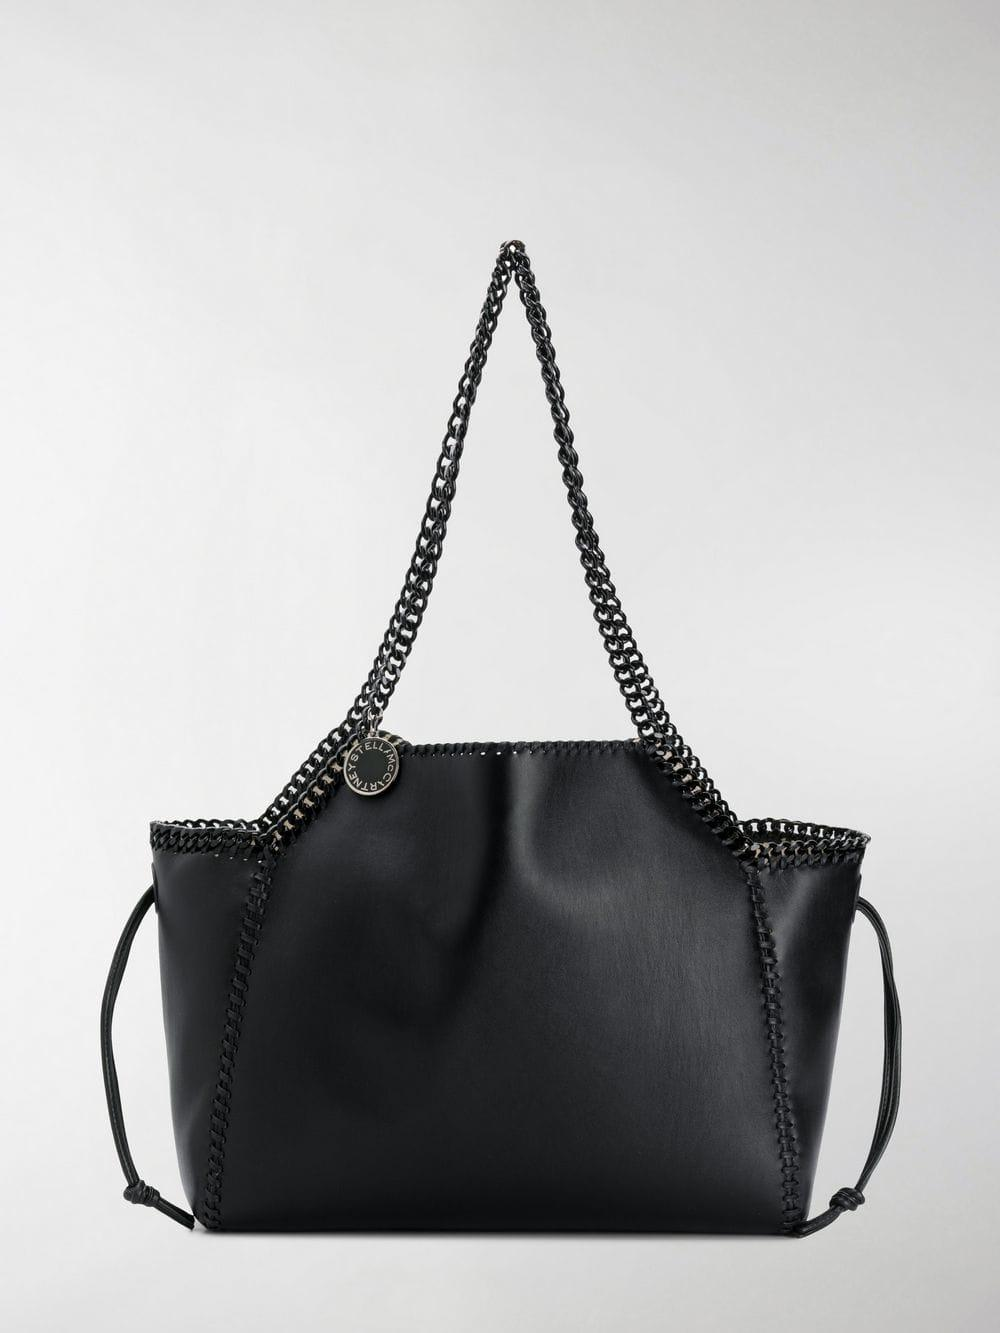 4b4f6c2c3d90 Lyst - Stella McCartney Large Falabella Tote Bag in Black